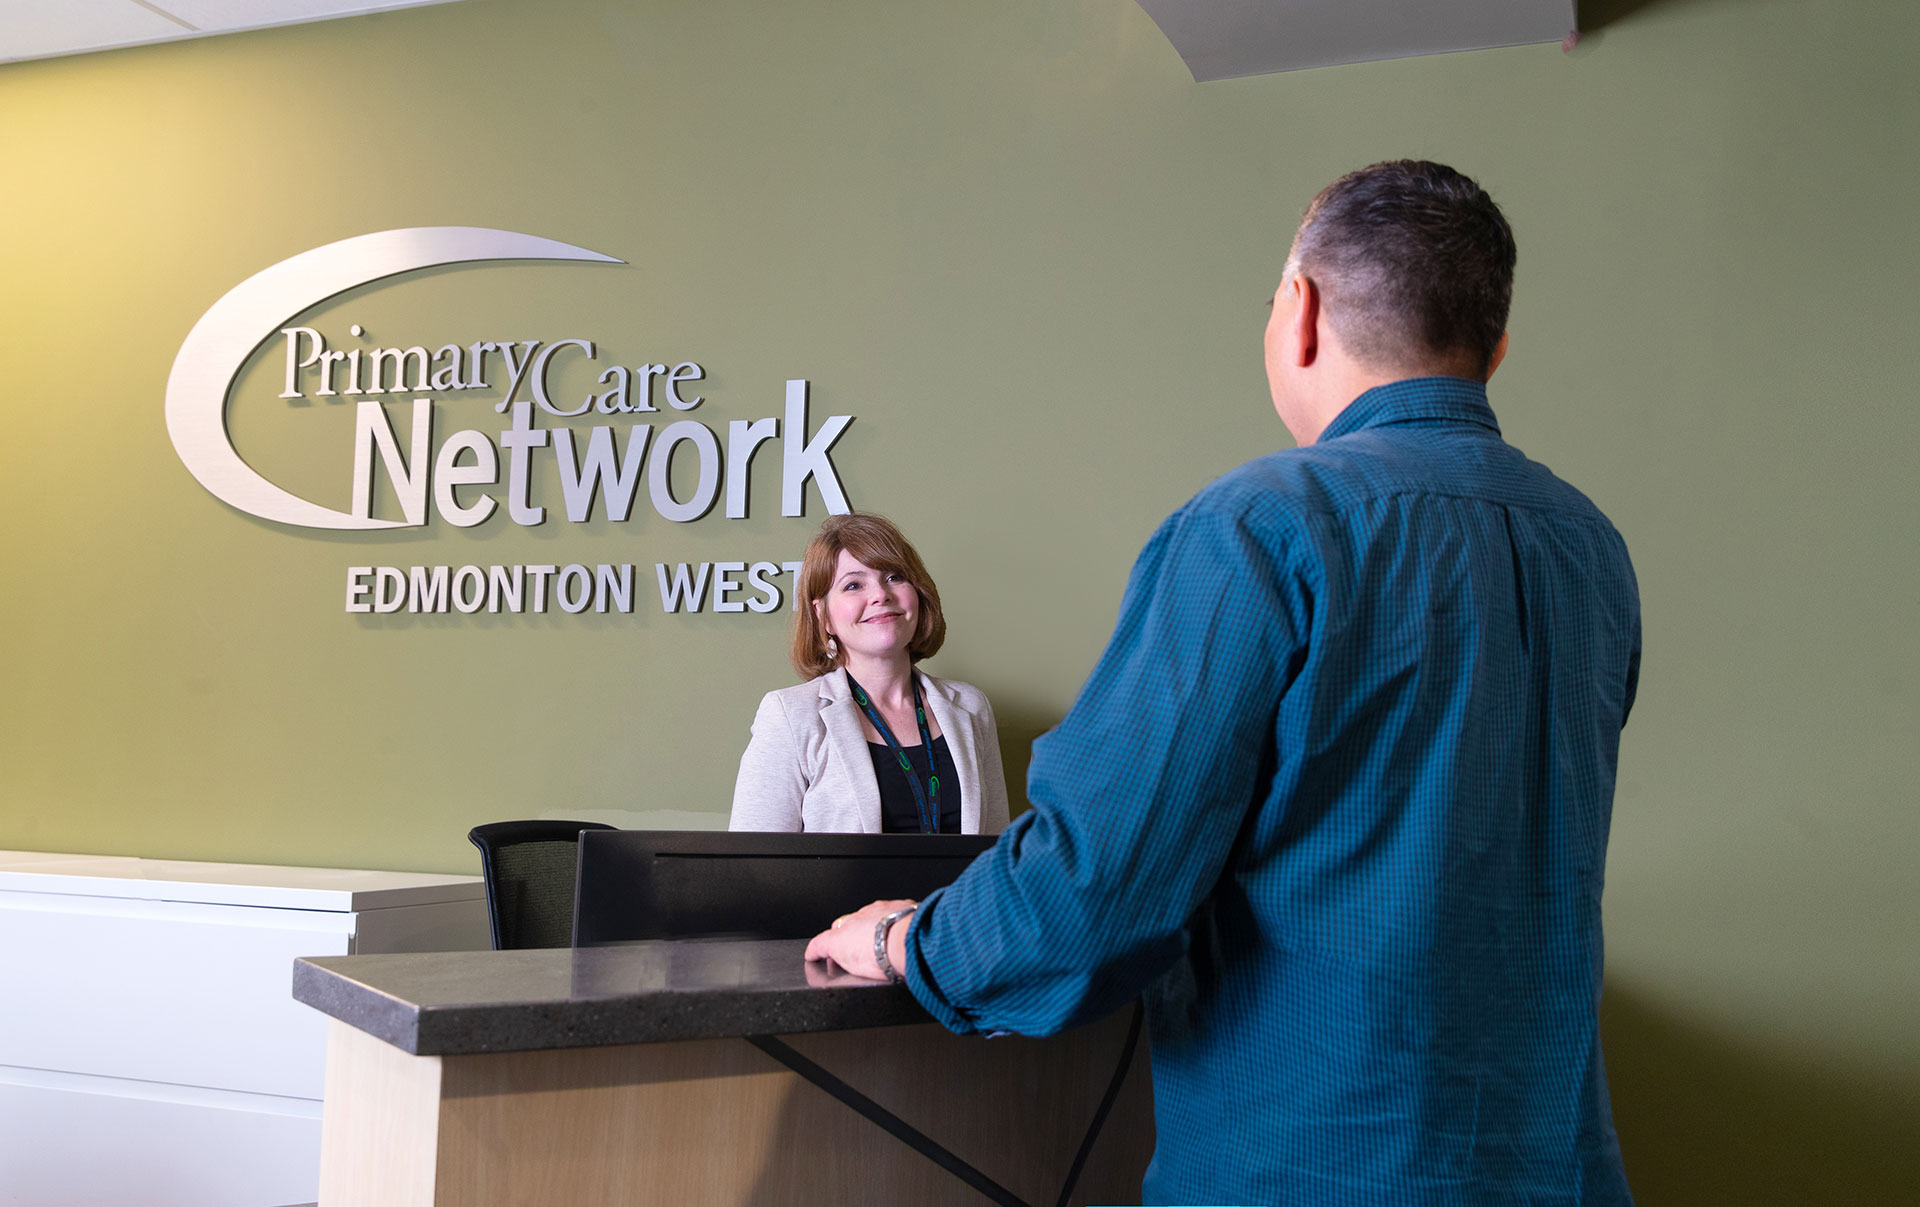 Two people standing at the Edmonton West Primary Care Network front reception area talking.